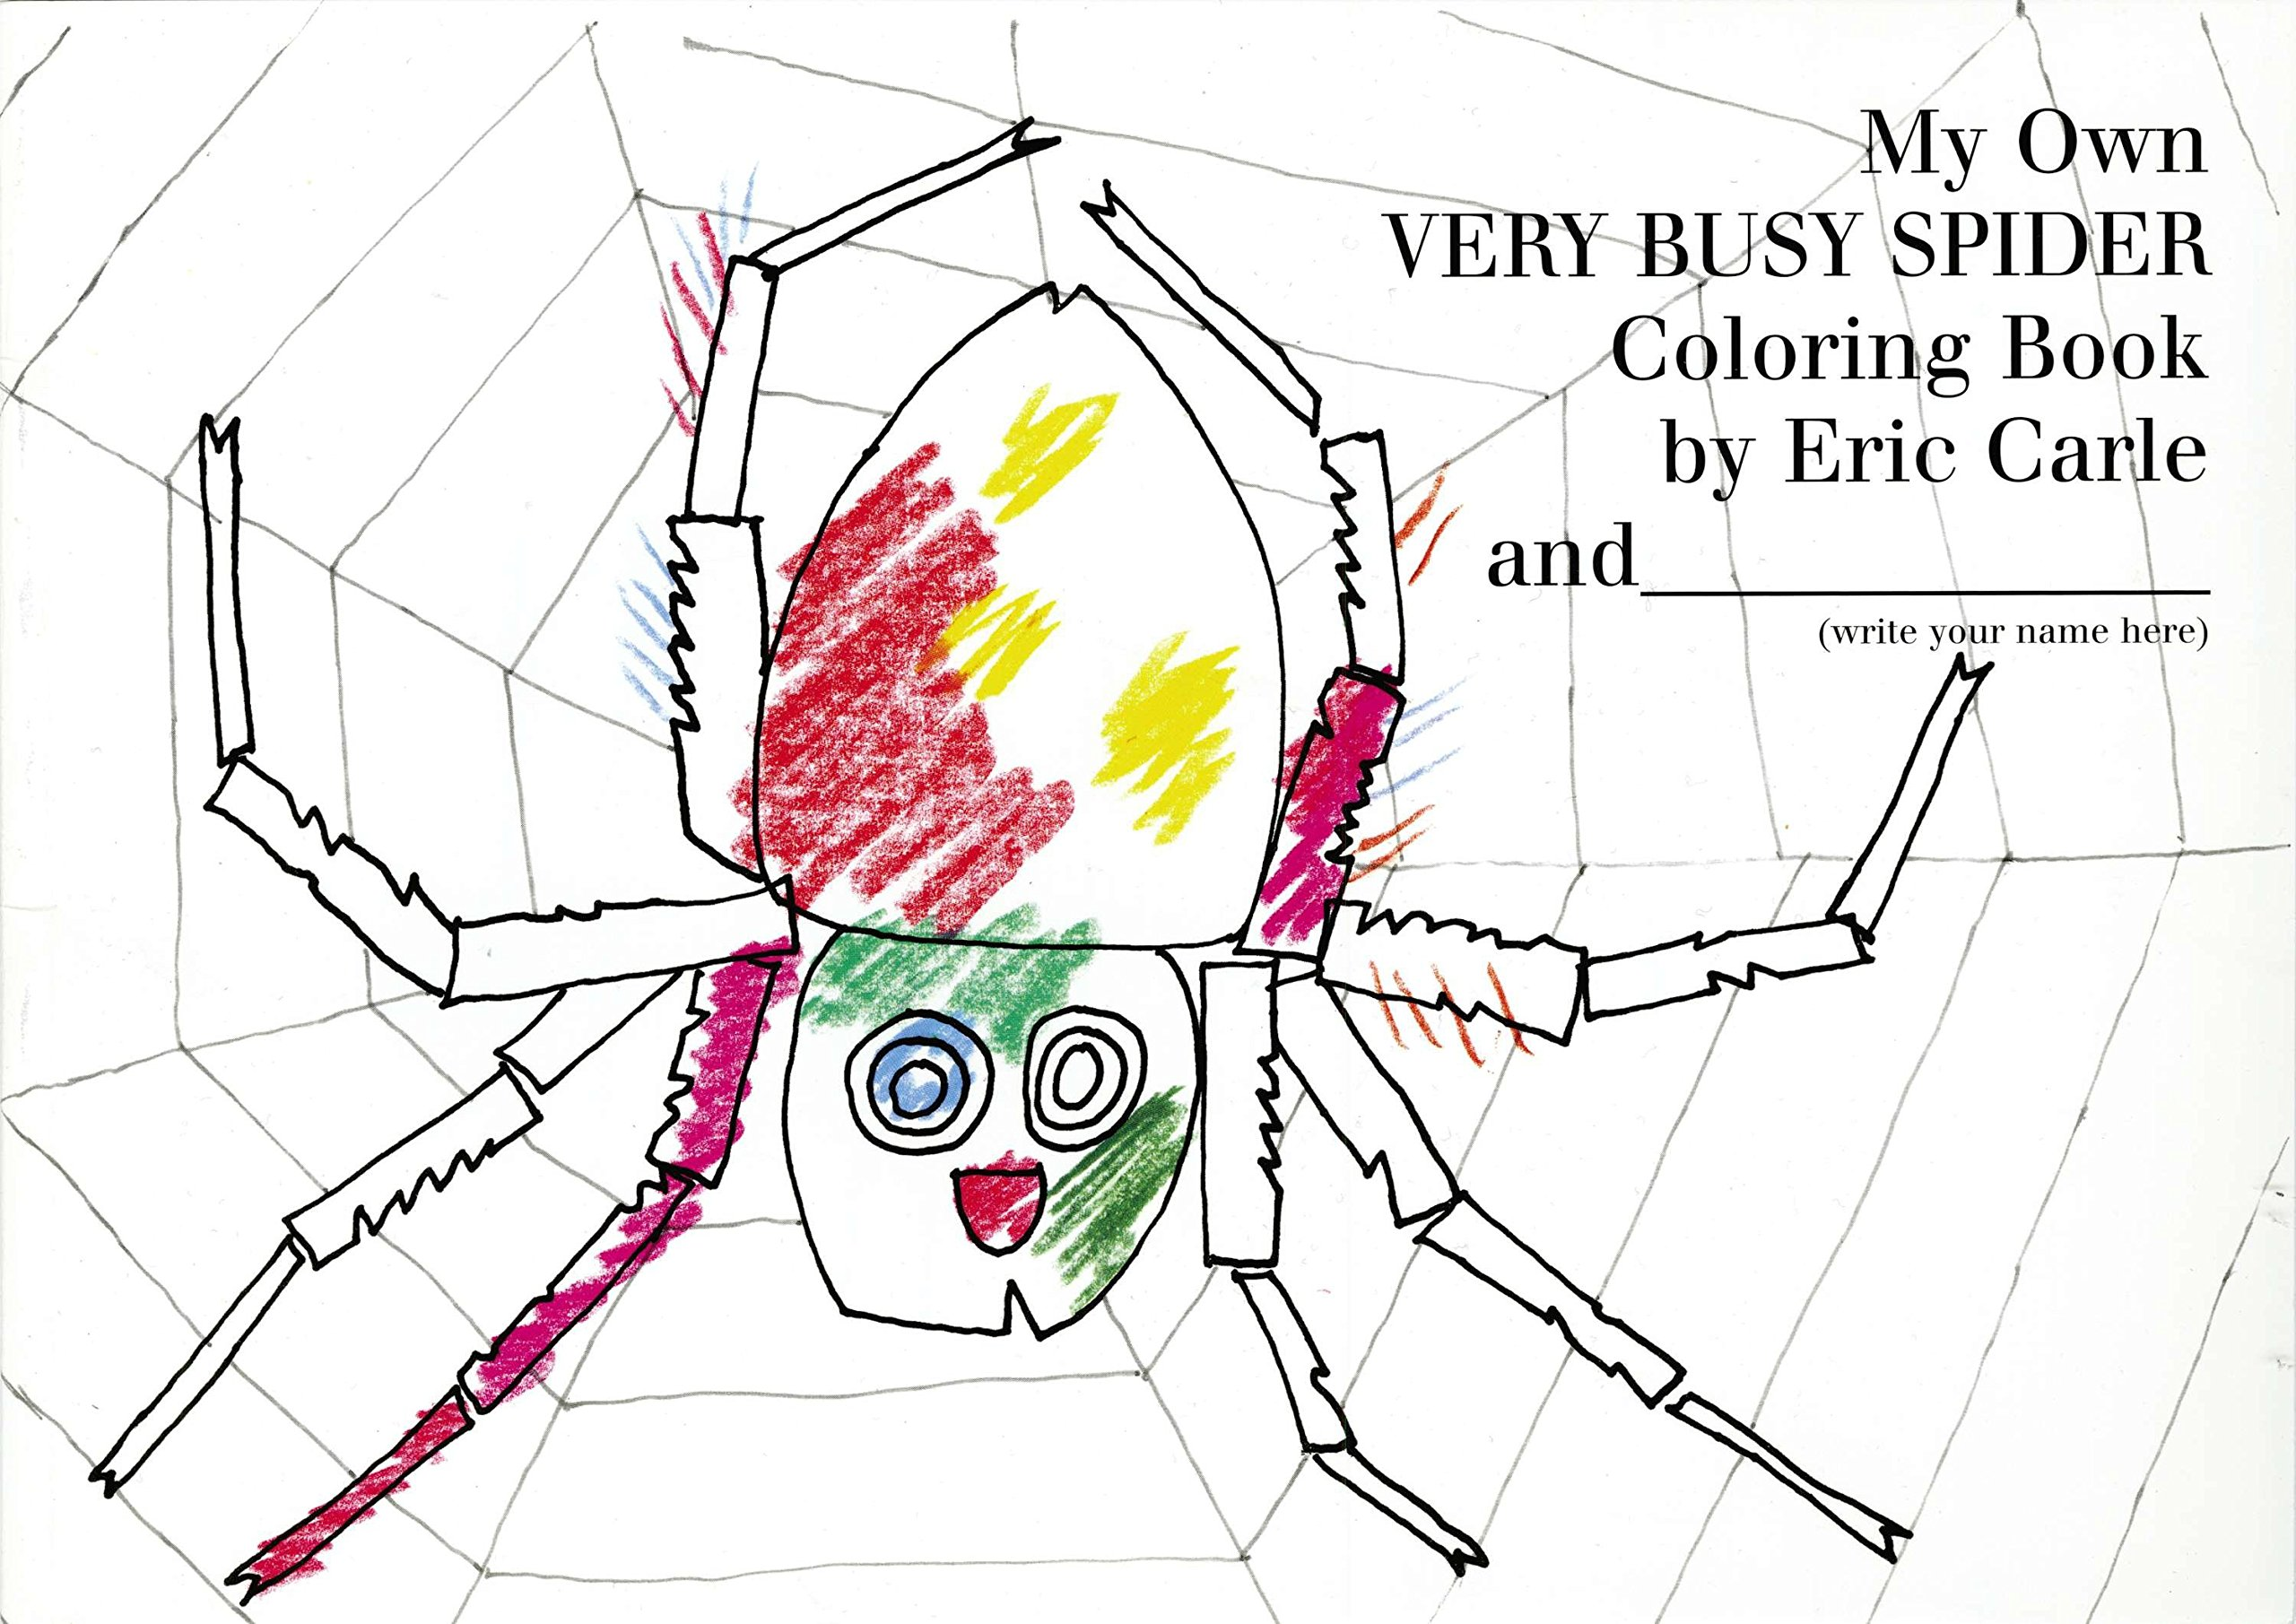 Very Busy Spider Coloring Book